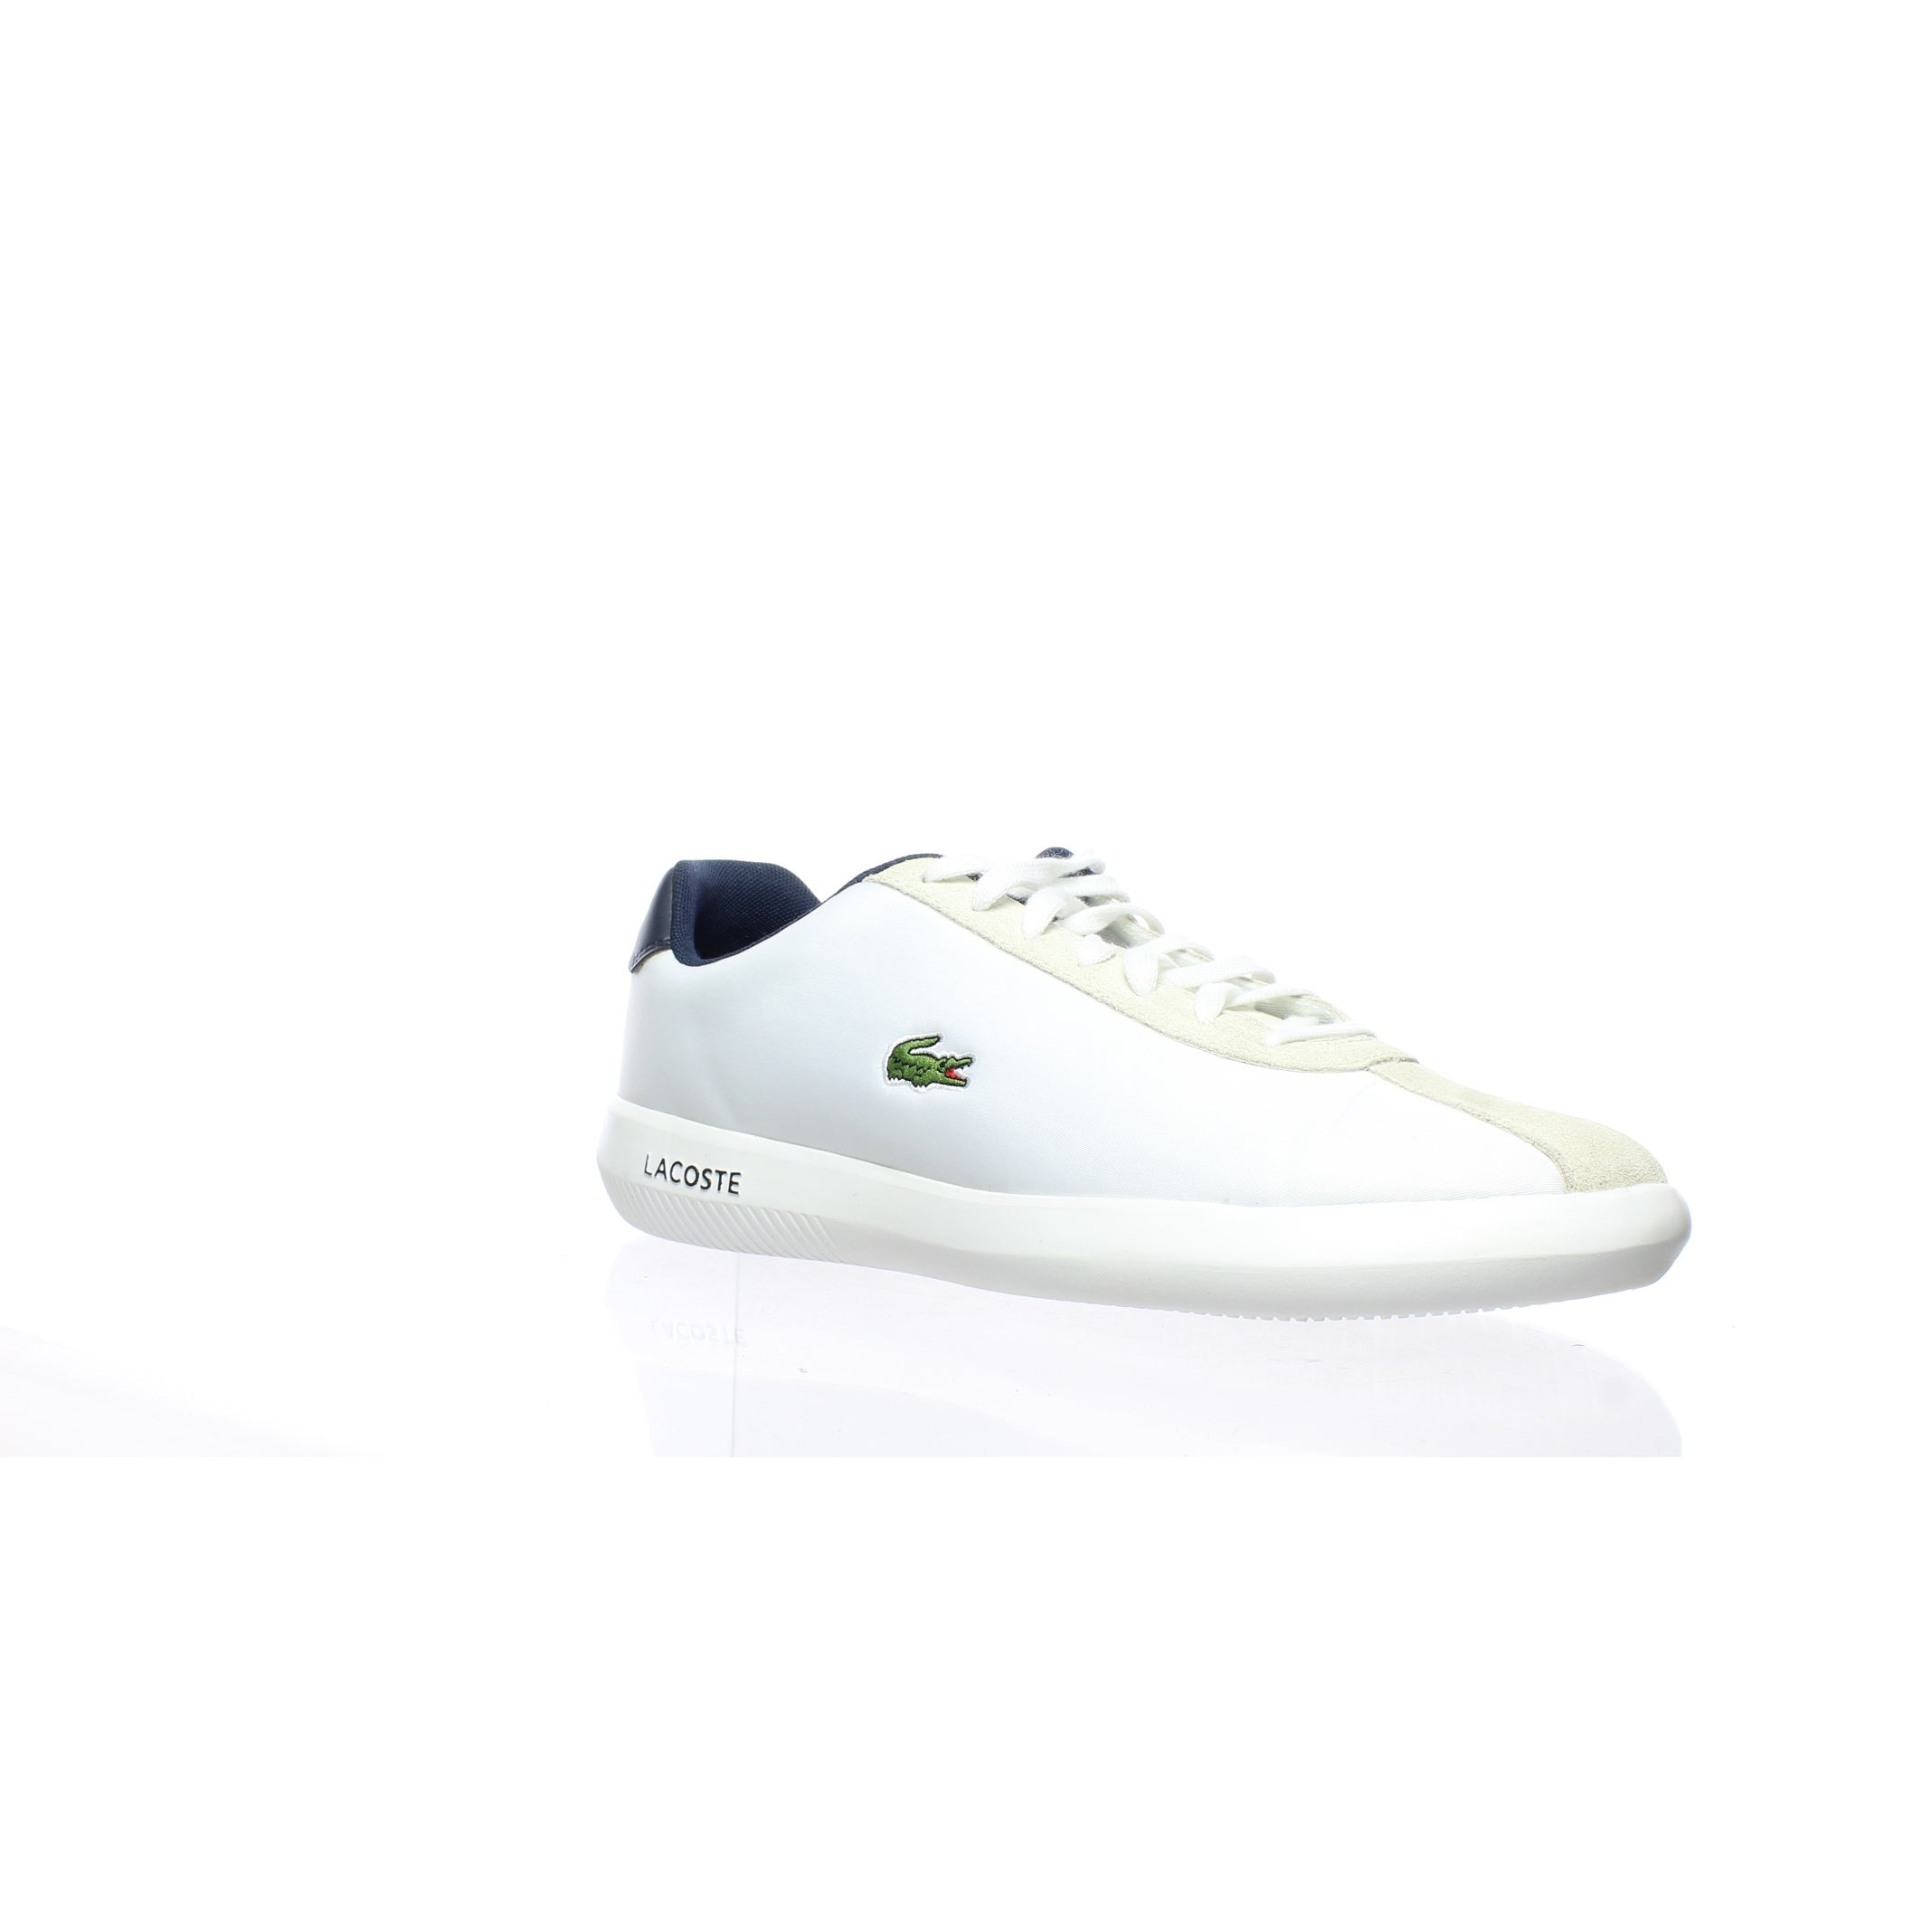 85cb01075b3cb7 Buy Lacoste Men s Athletic Shoes Online at Overstock